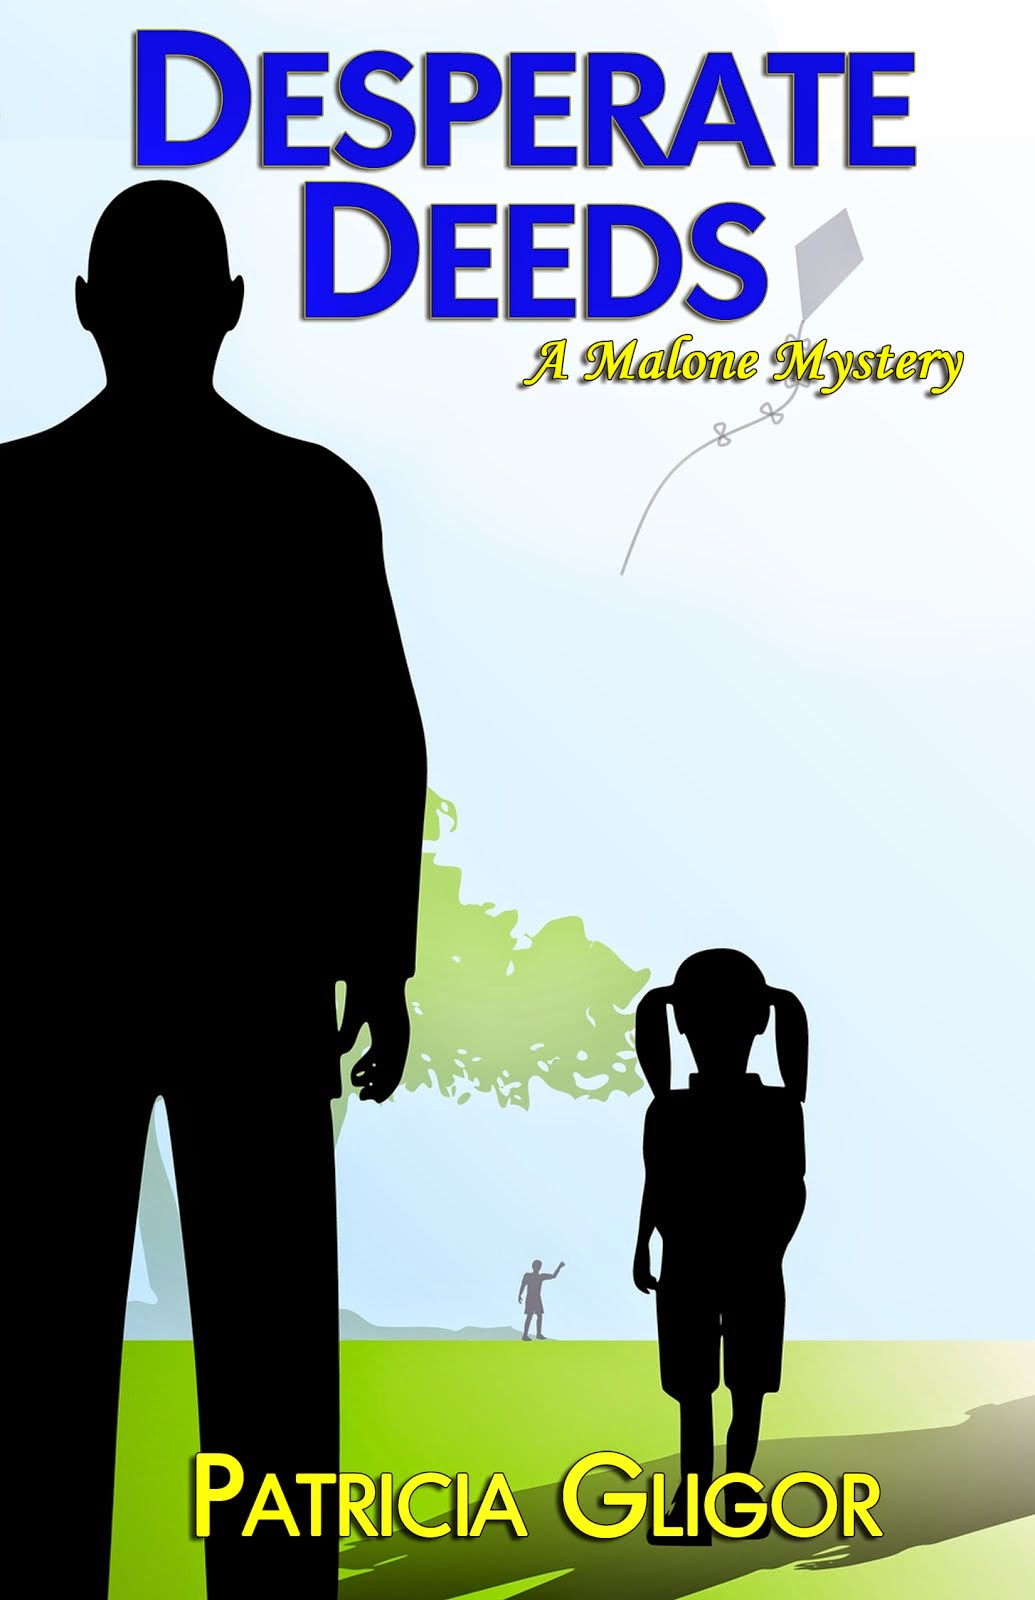 Ann's world is turned upside down when her young son goes missing.